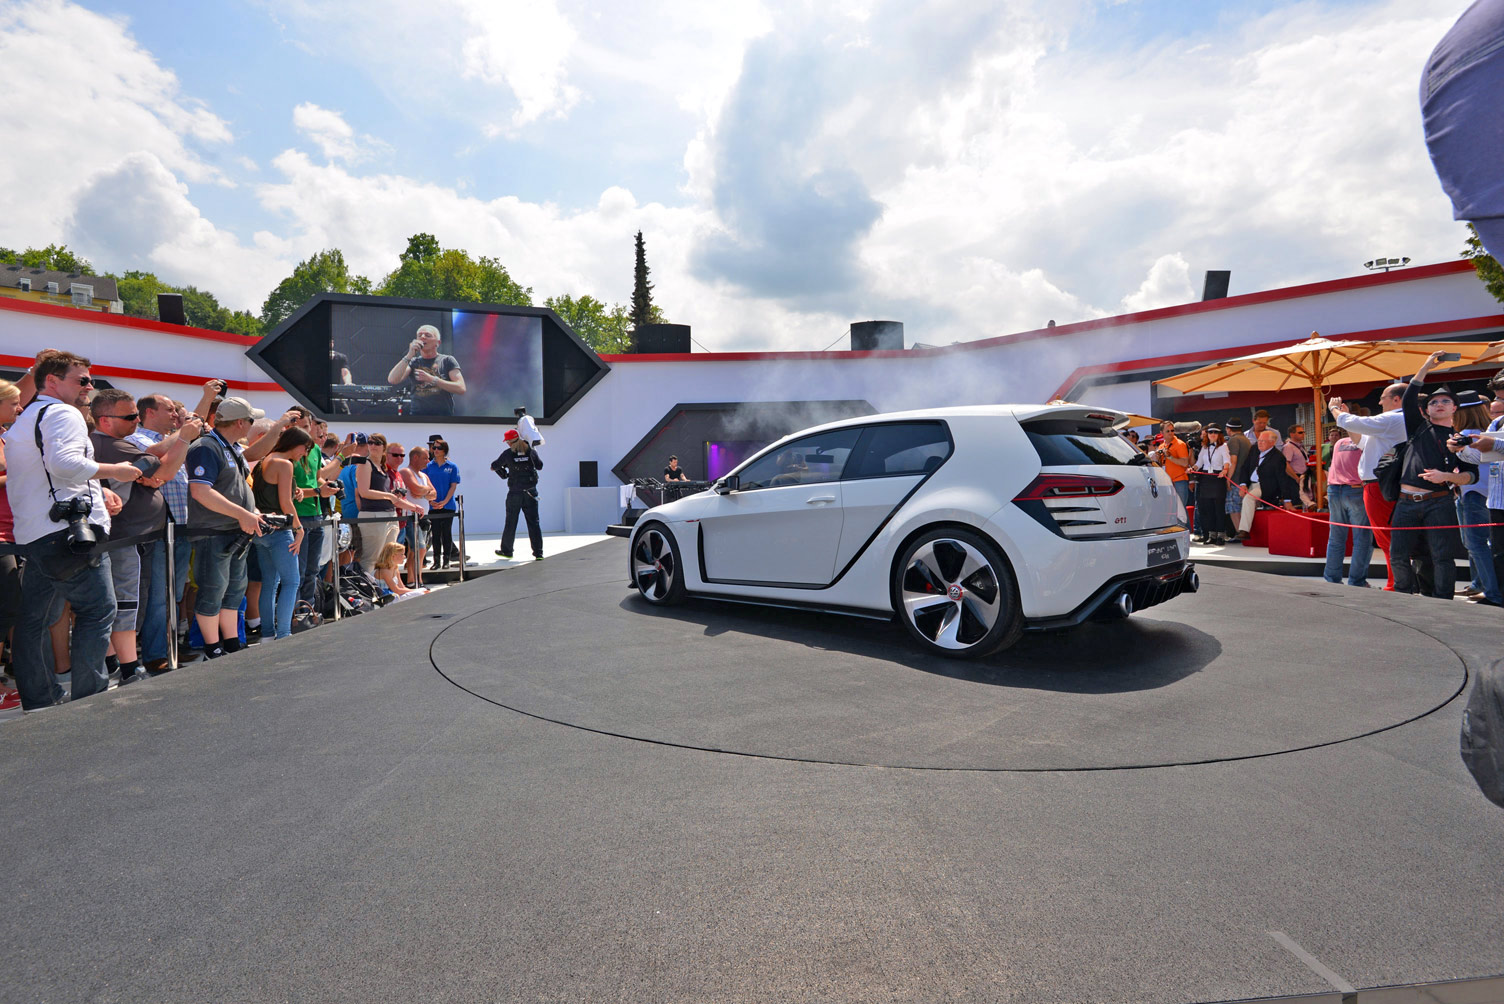 volkswagen-design-vision-gti-worthersee-027